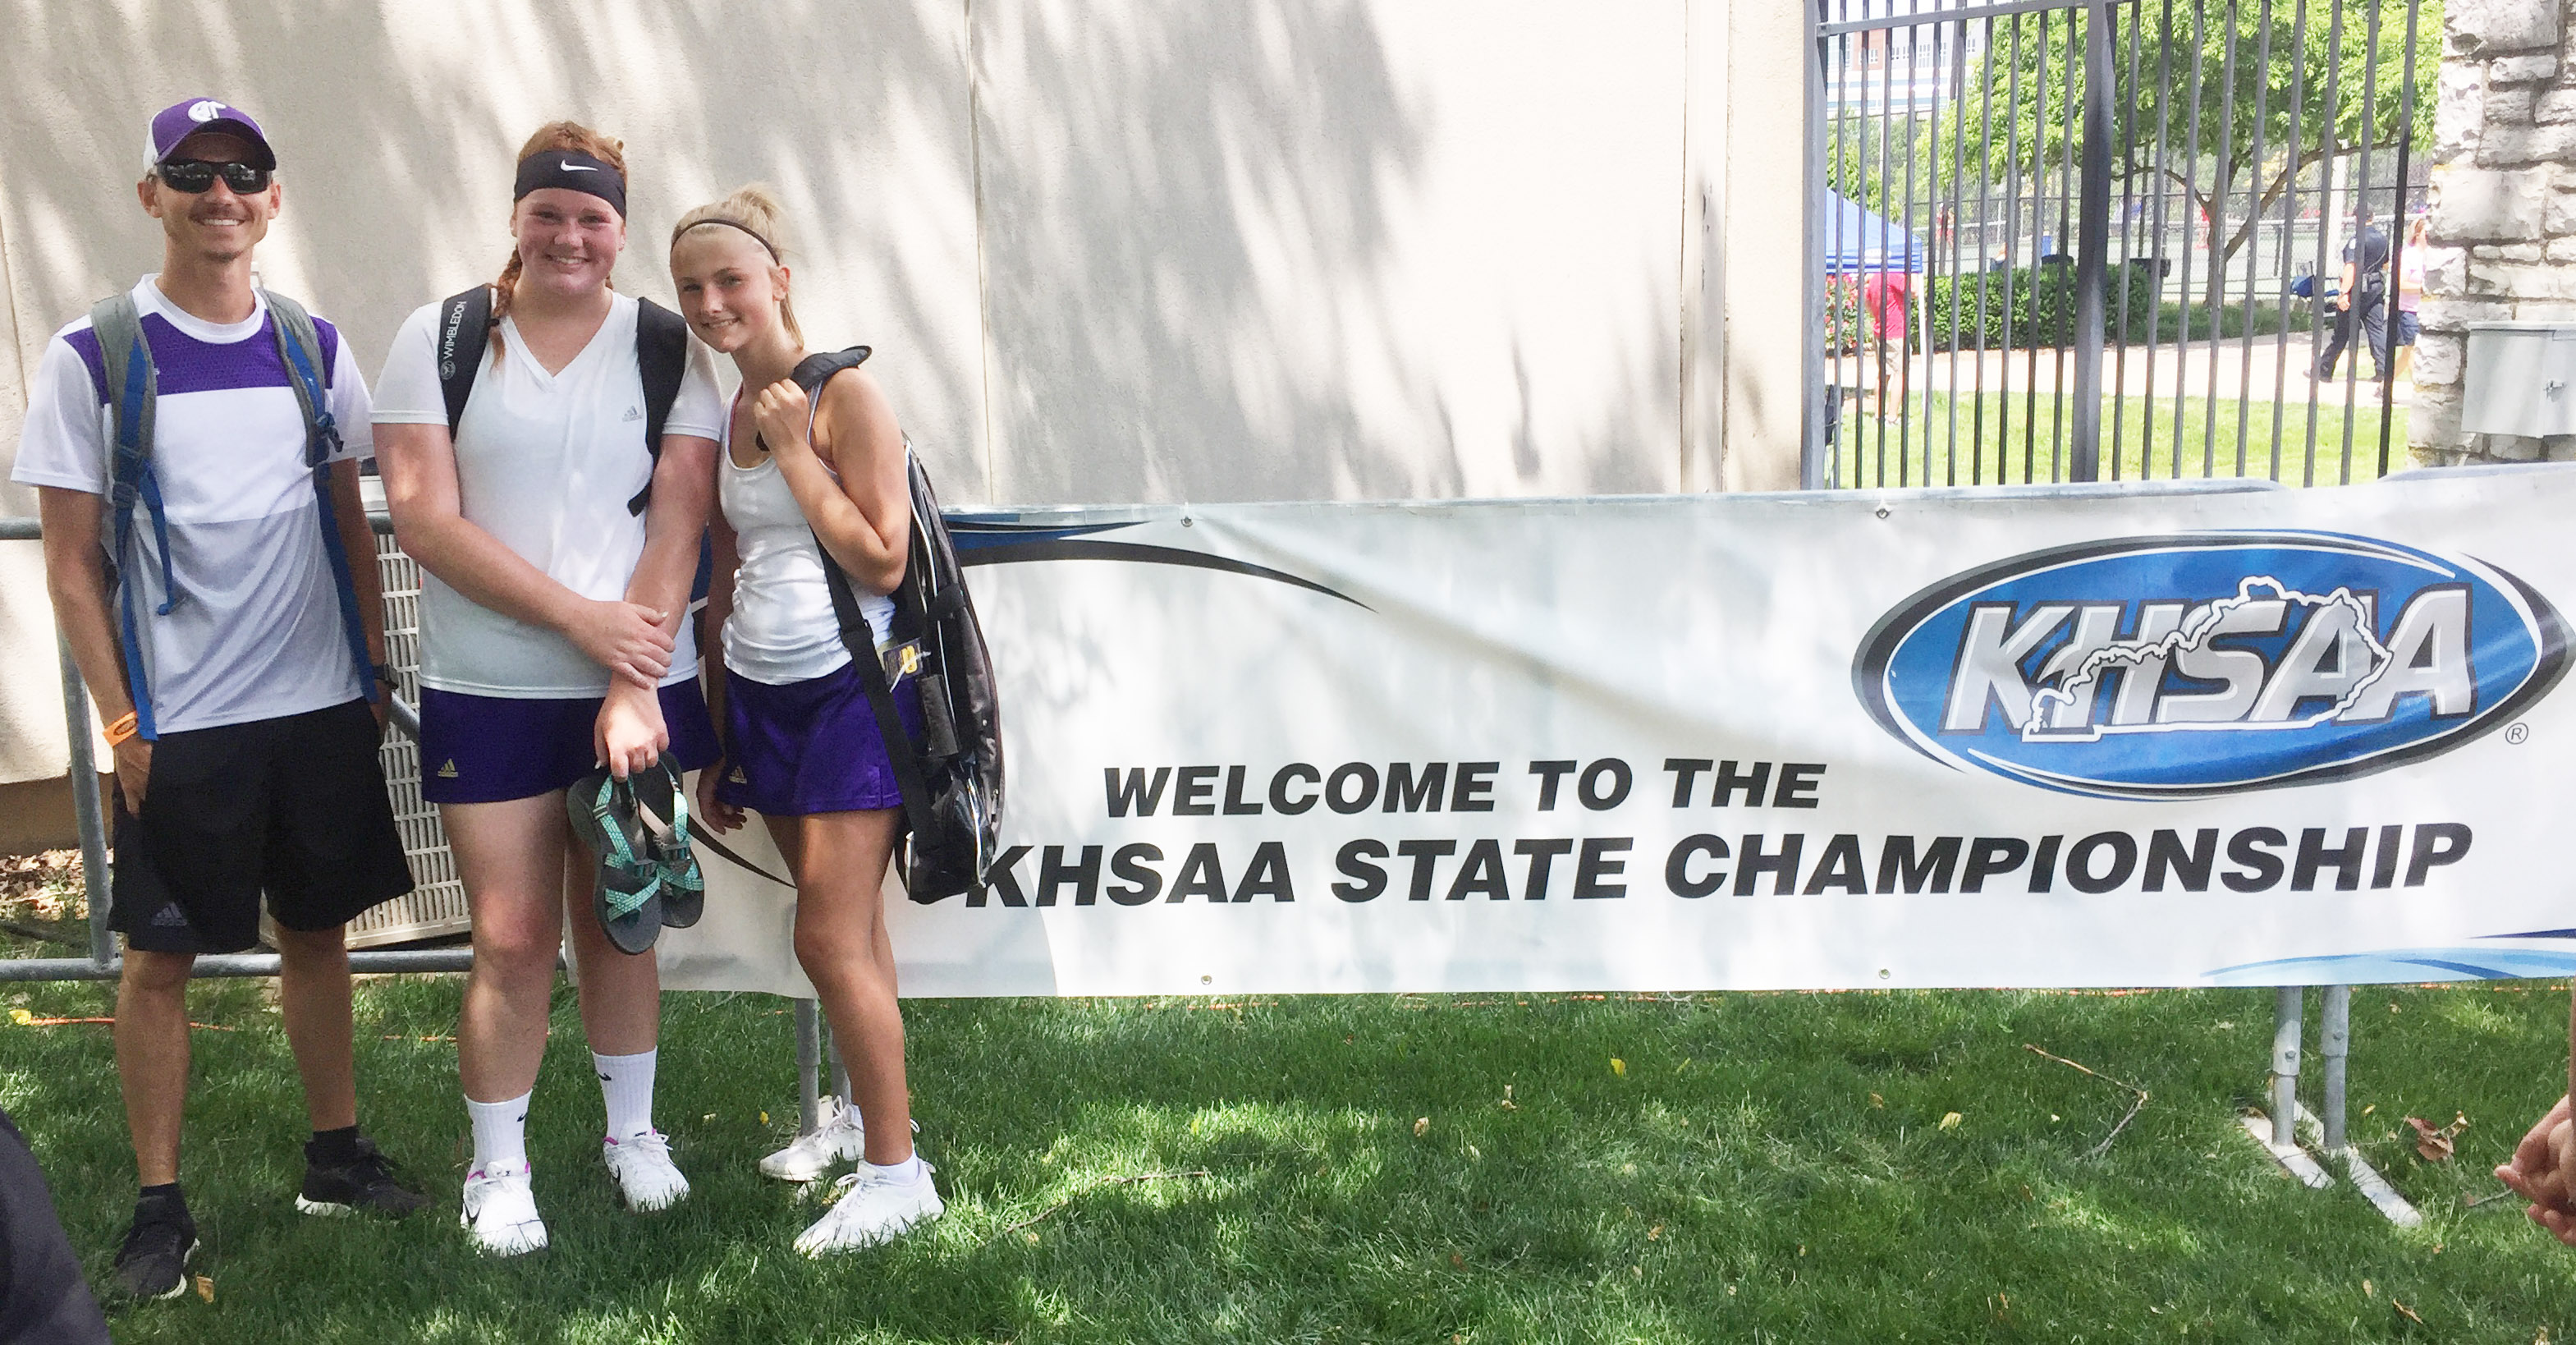 CHS tennis duo Mallory Haley, center, and freshman Victoria Cox played in the KHSAA state tennis tournament last week. At left is coach Bradley Harris.